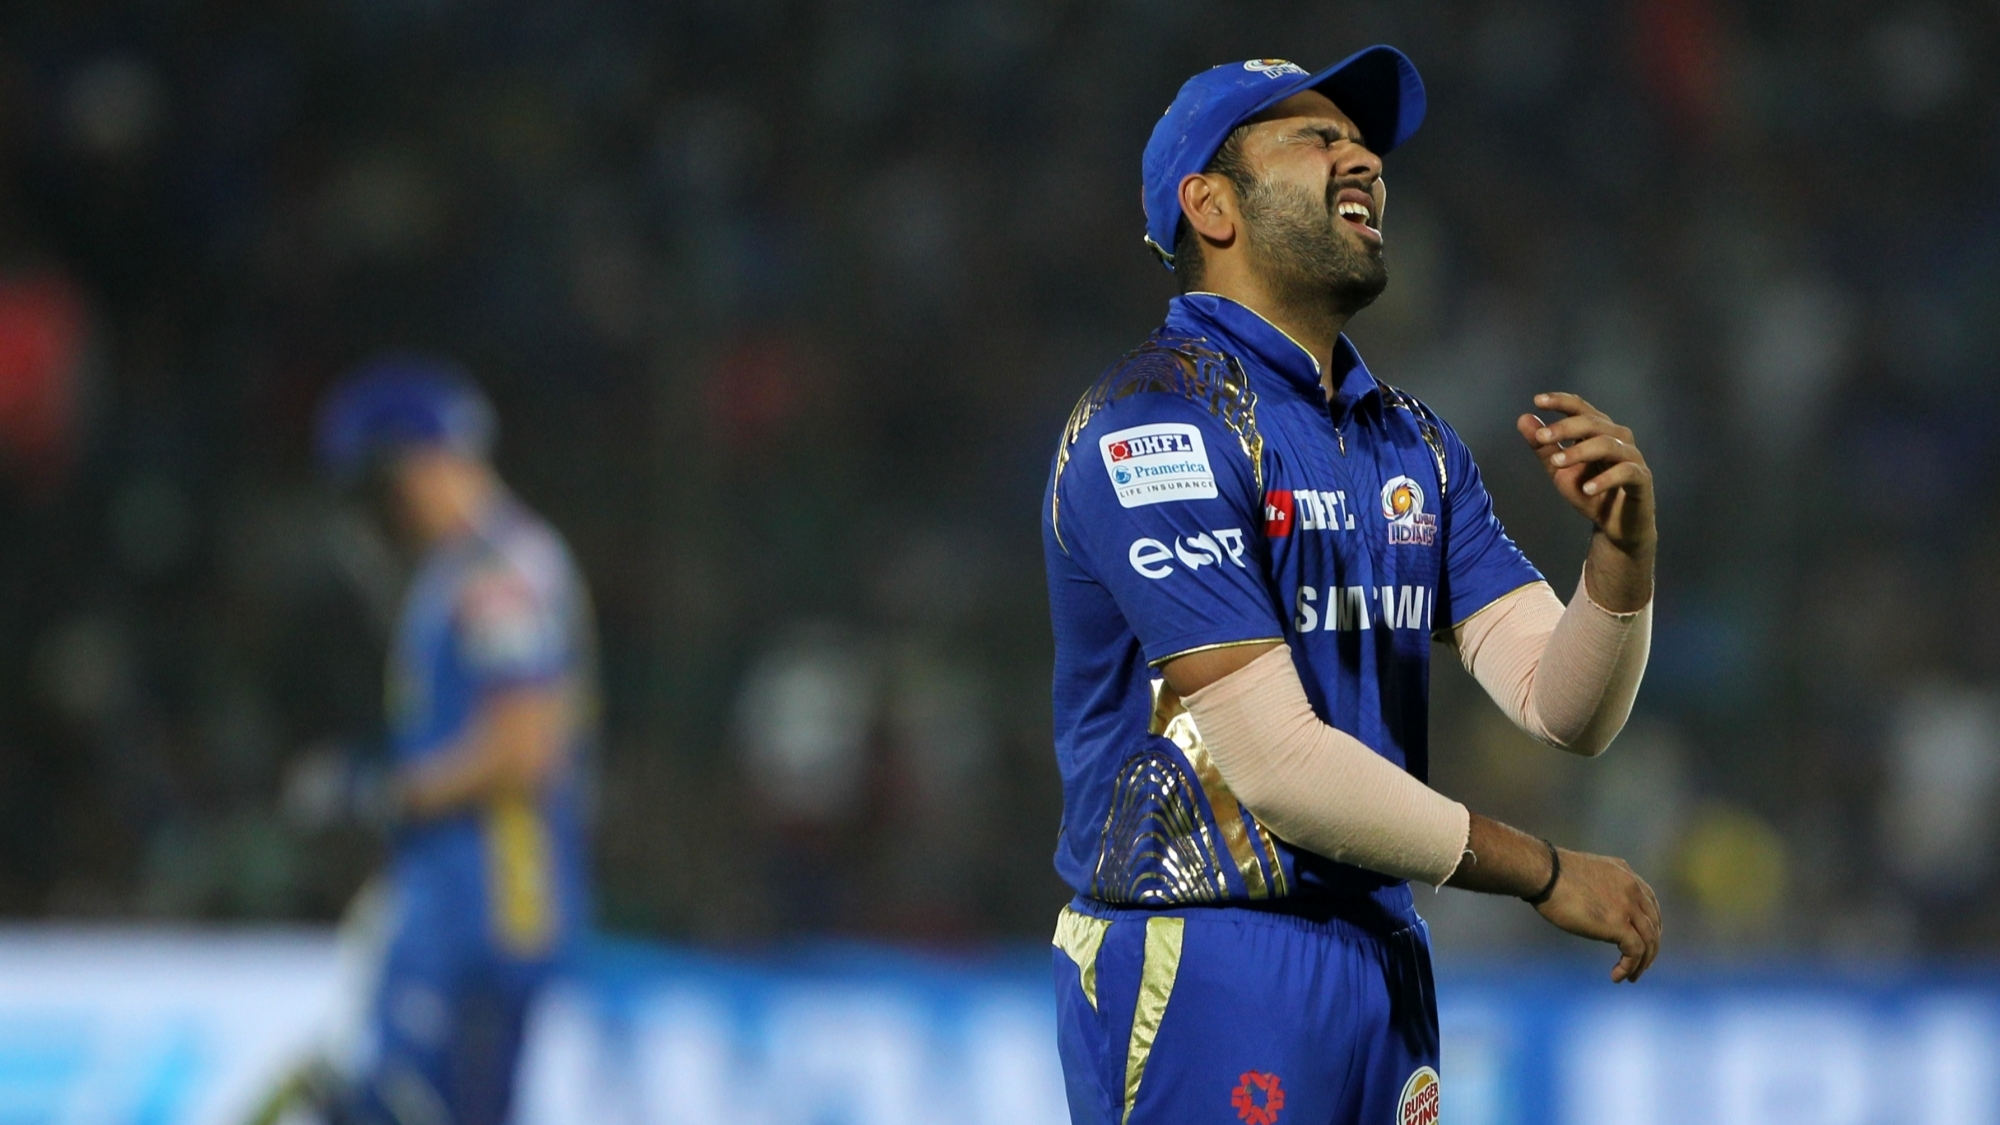 IPL 2018: Rohit Sharma brutally trolled by Mumbai Indians fans after low-scoring home defeat